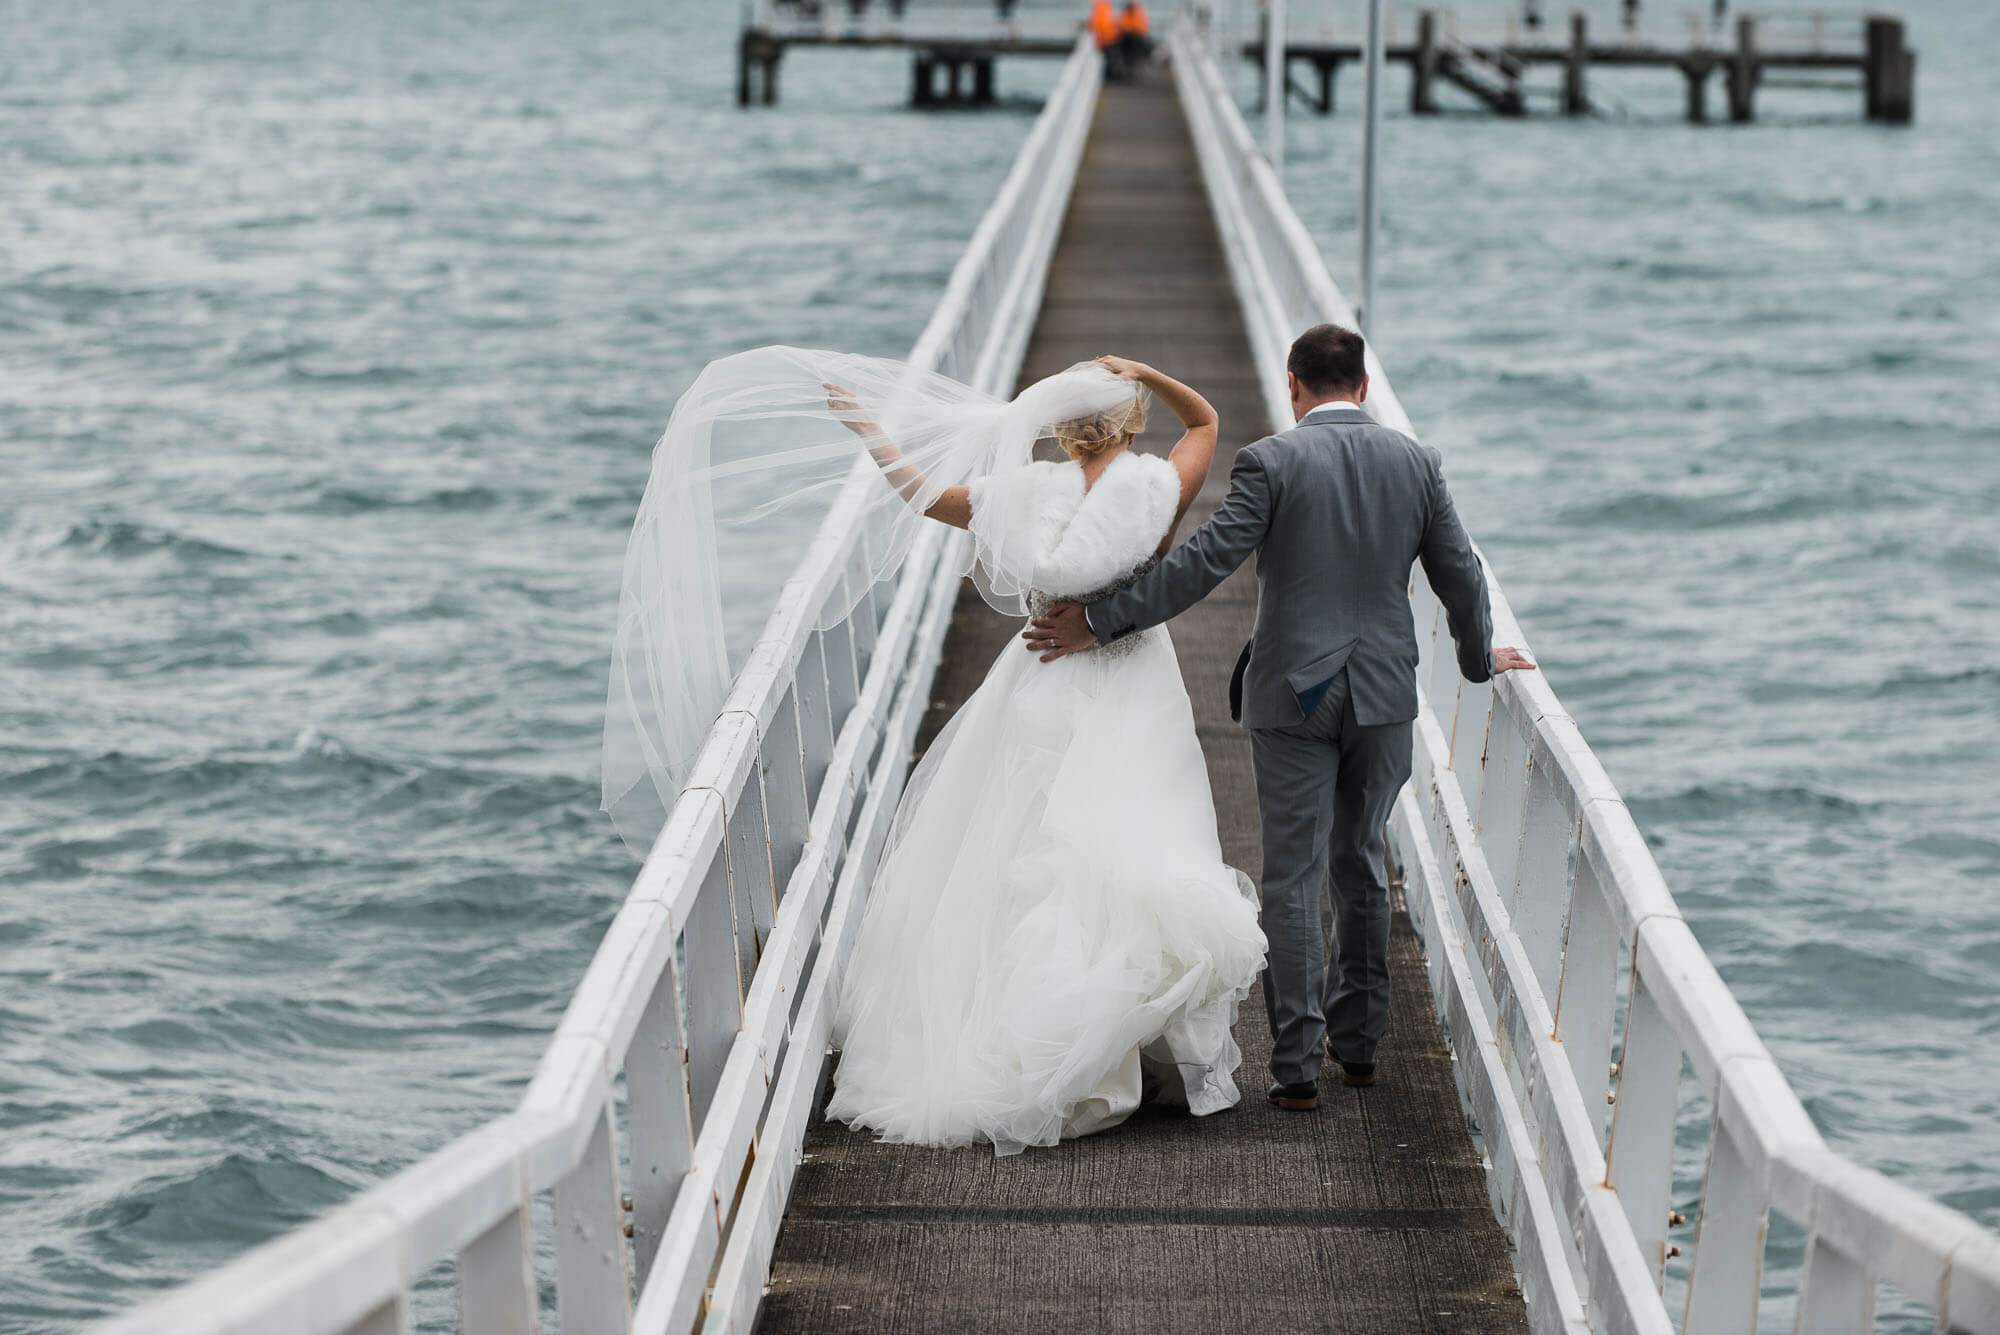 bride-and-groom-walk-down-pier.jpg